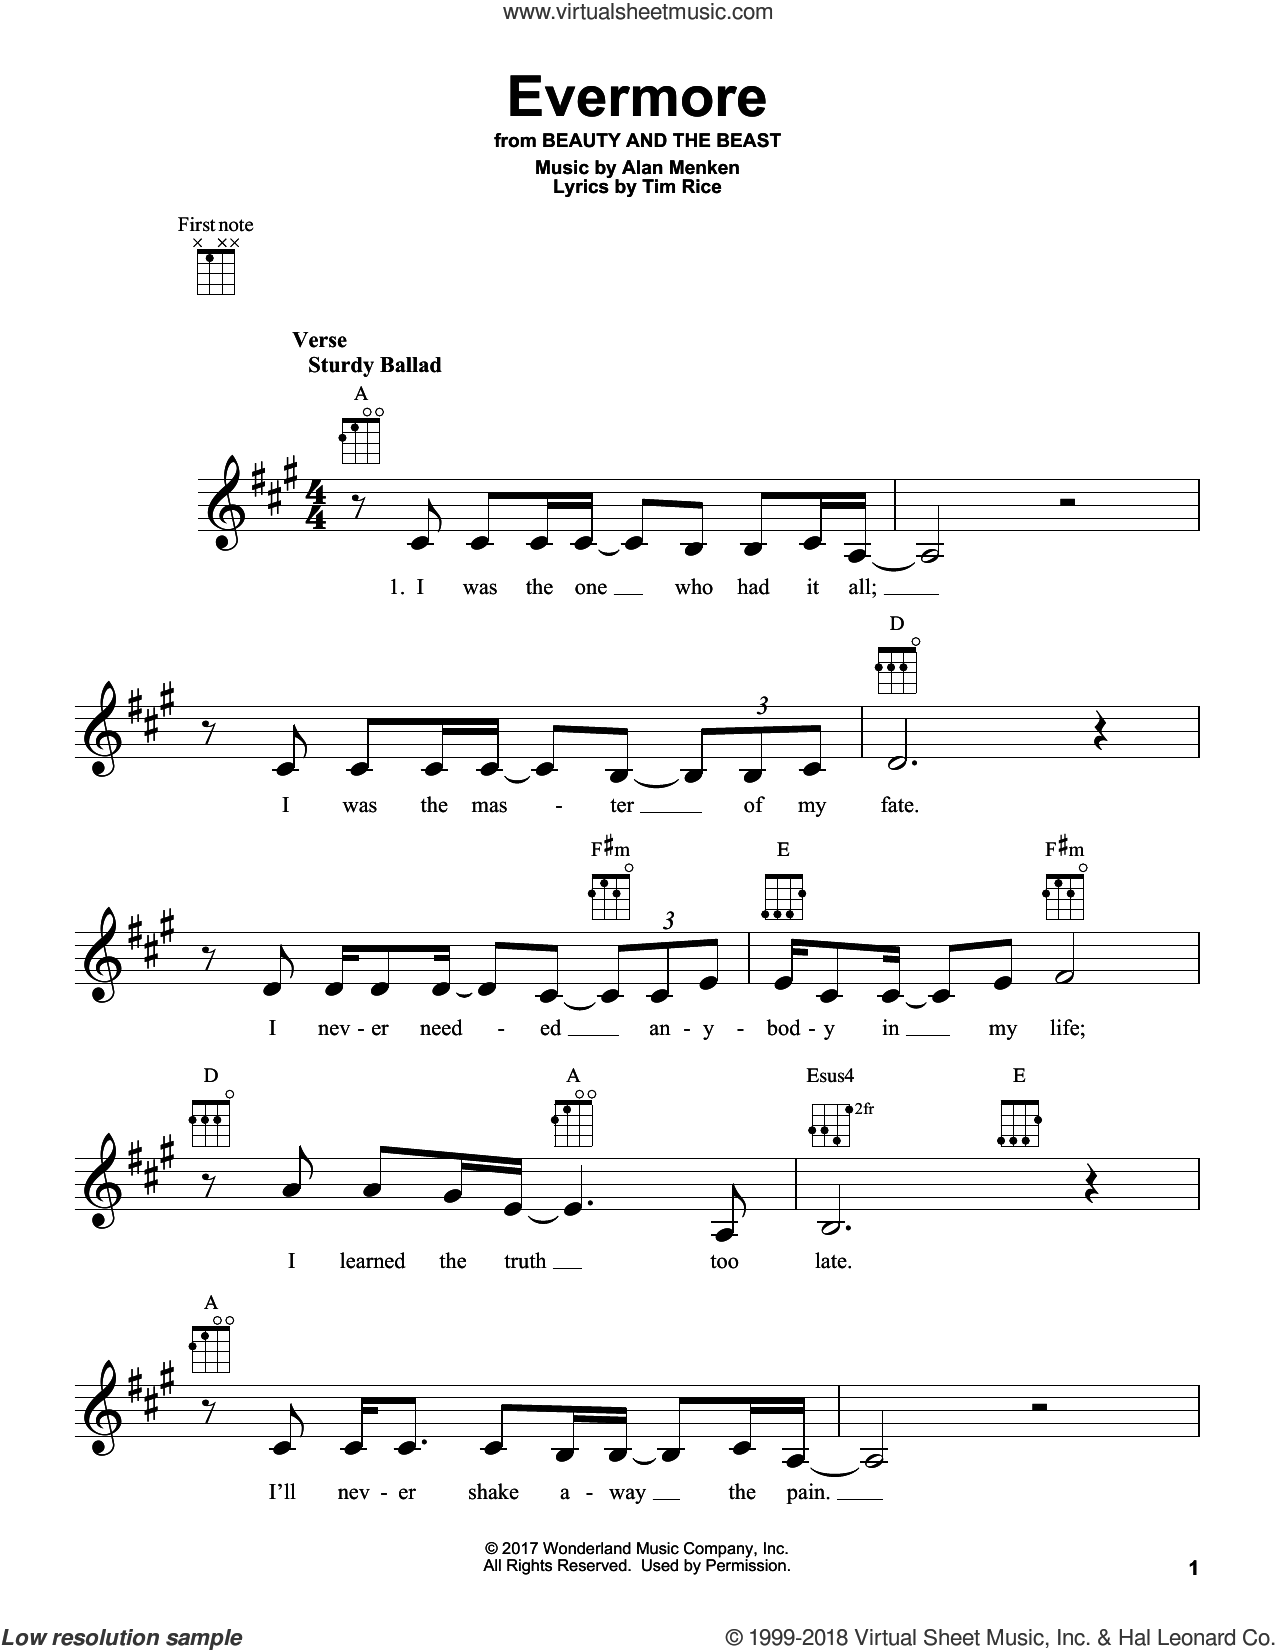 Evermore (from Beauty and the Beast) sheet music for ukulele by Josh Groban, Beauty and the Beast Cast, Howard Ashman, Alan Menken and Tim Rice, intermediate skill level